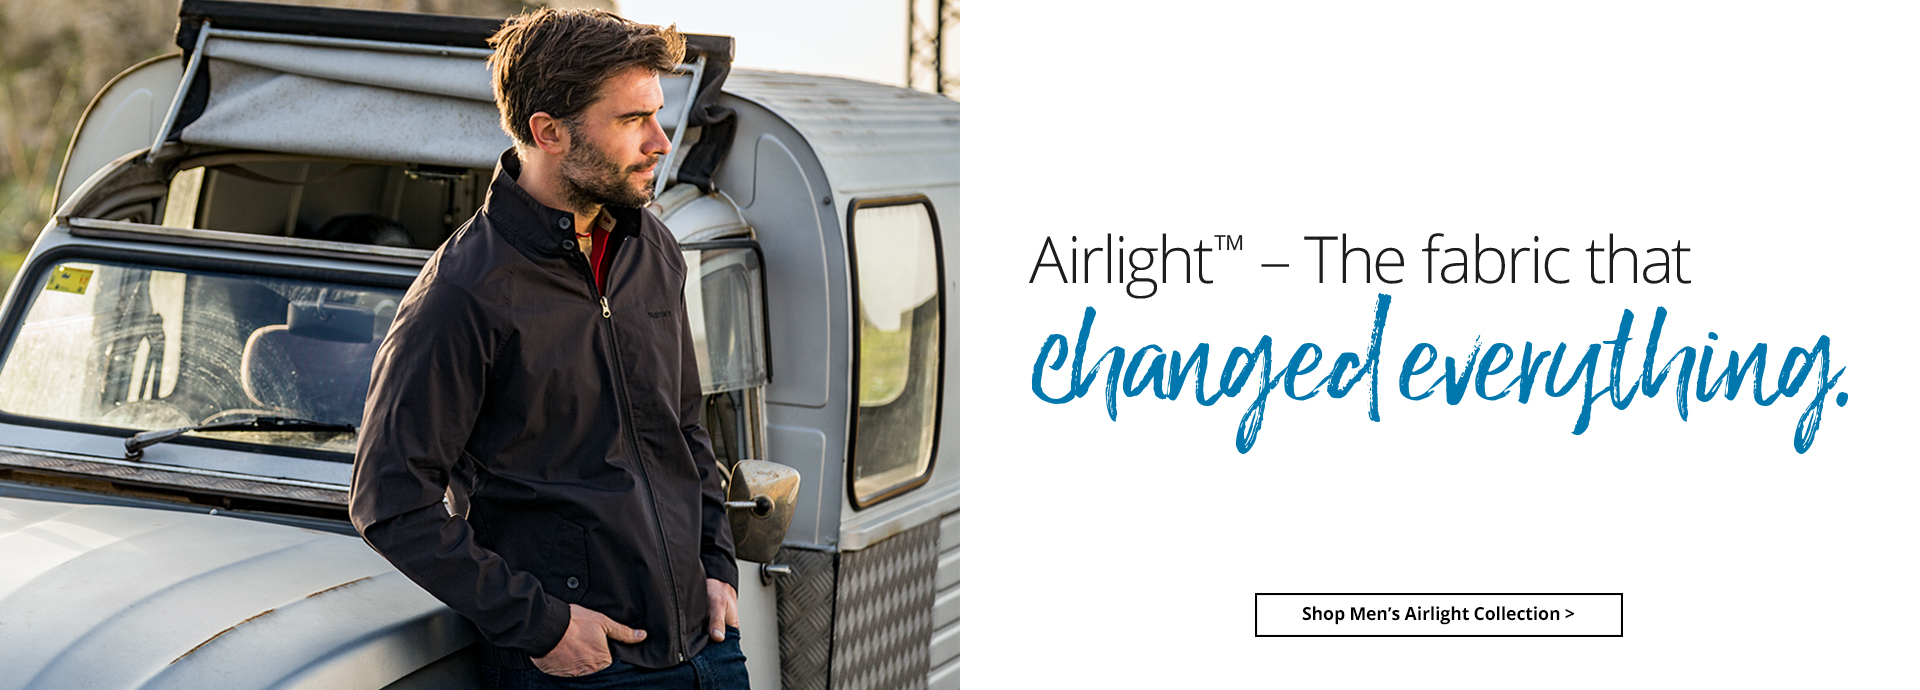 Men's Airlight Collection